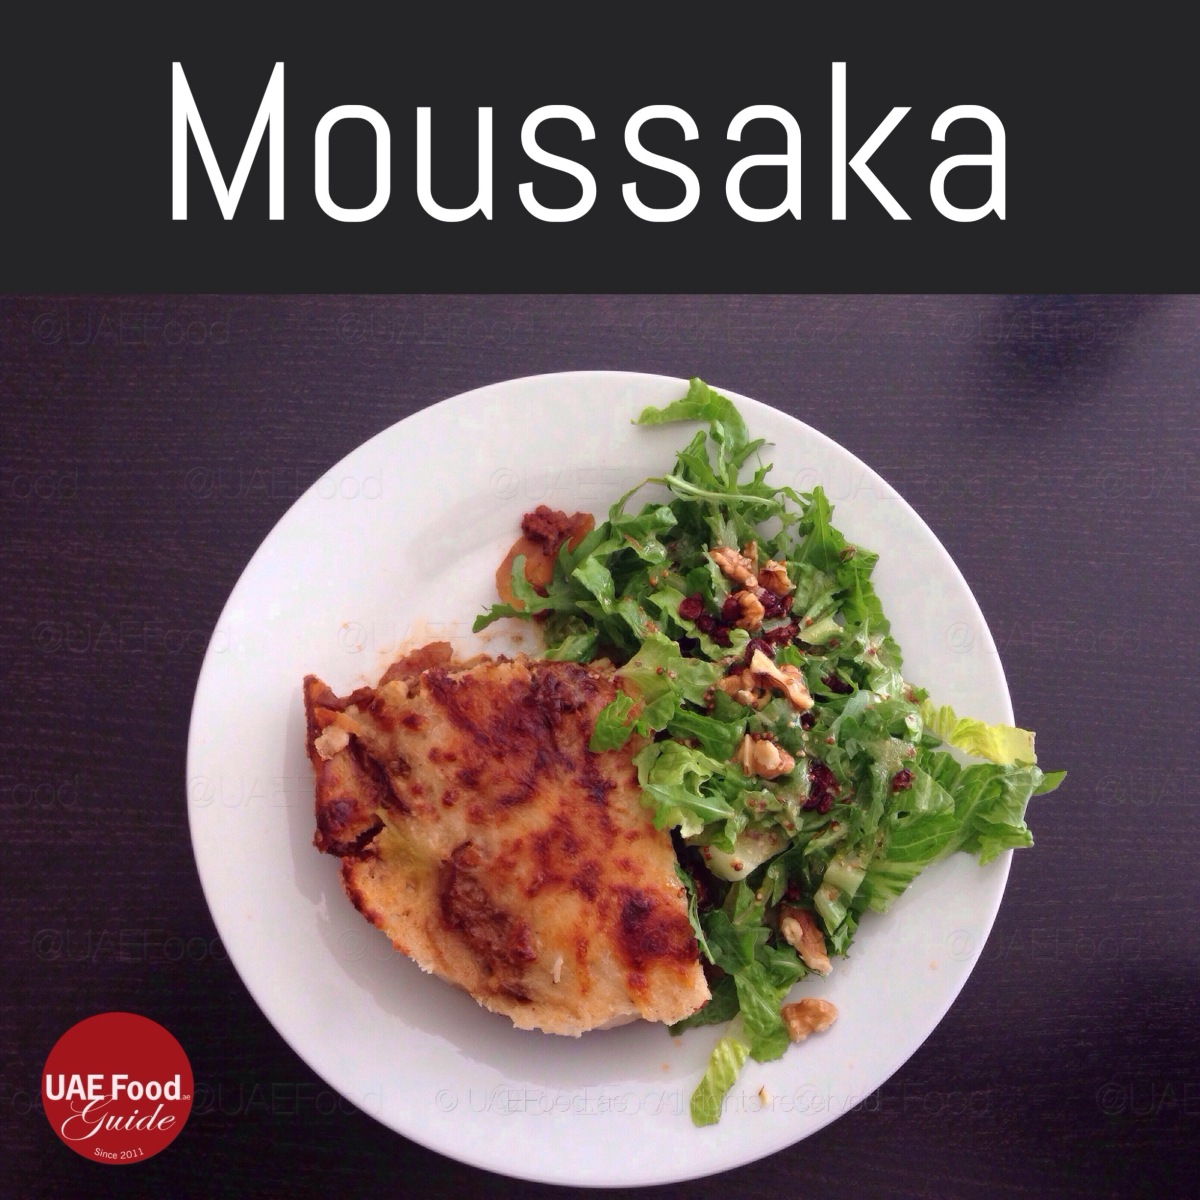 Best Moussaka in Dubai